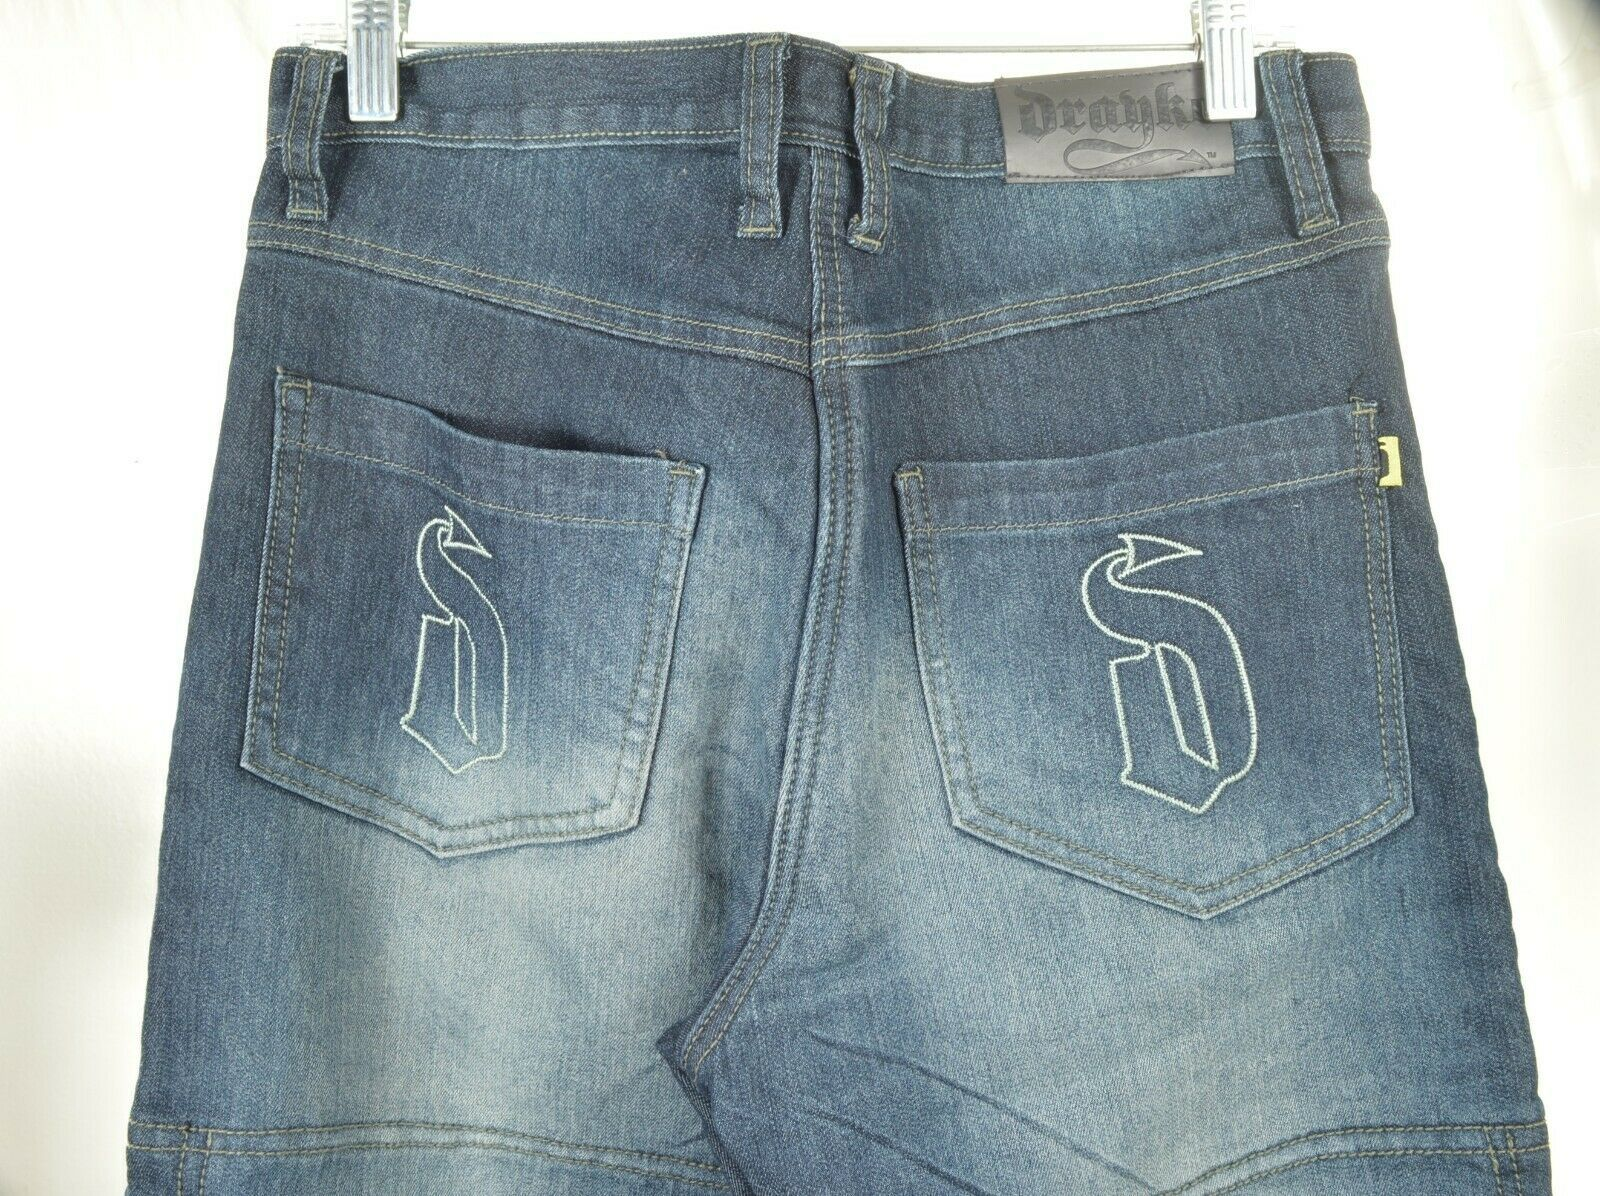 Drayko Jeans Mens 30 x 37 Motorcycle Riding extra long padded - Slightly Used image 3